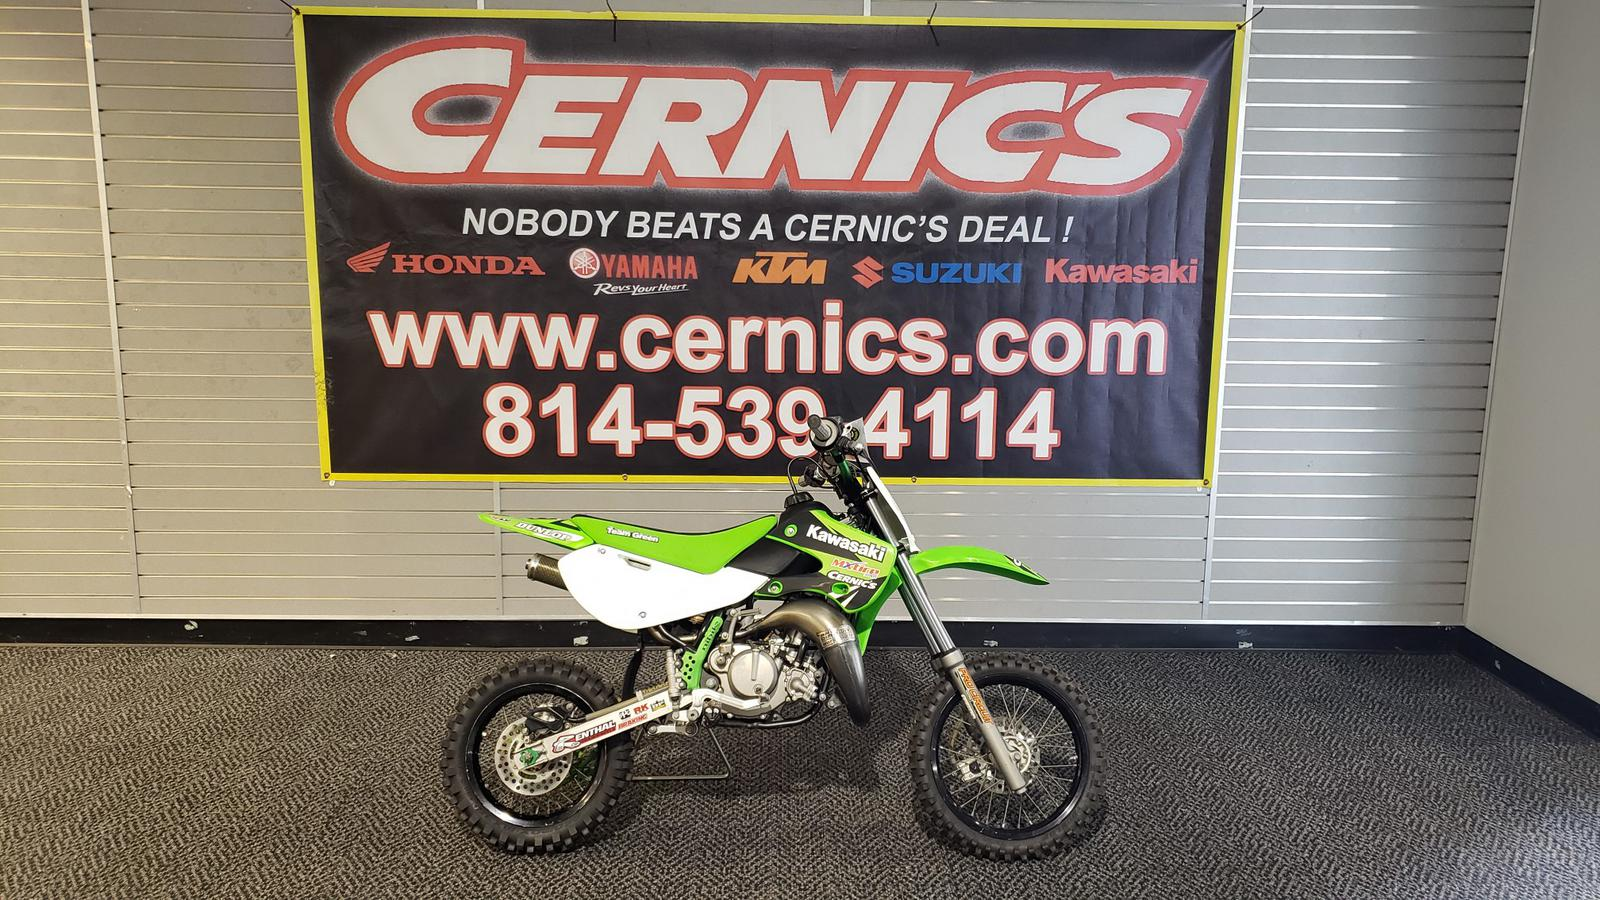 Inventory from Kawasaki Cernic's Johnstown, PA (800) 237-6425